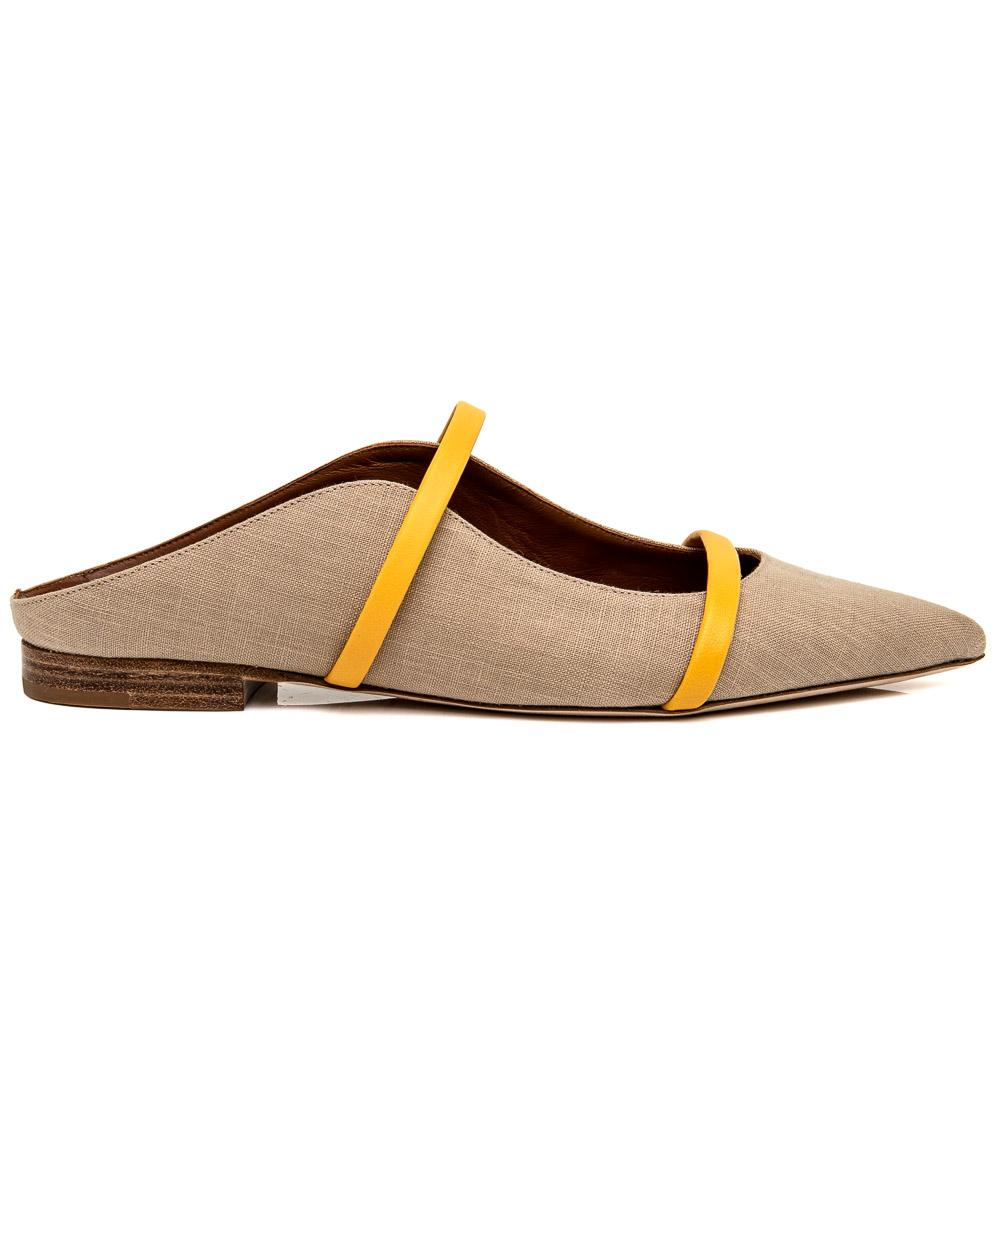 3305d2c3737 Lyst - Malone Souliers Beige Maureen Flat in Natural